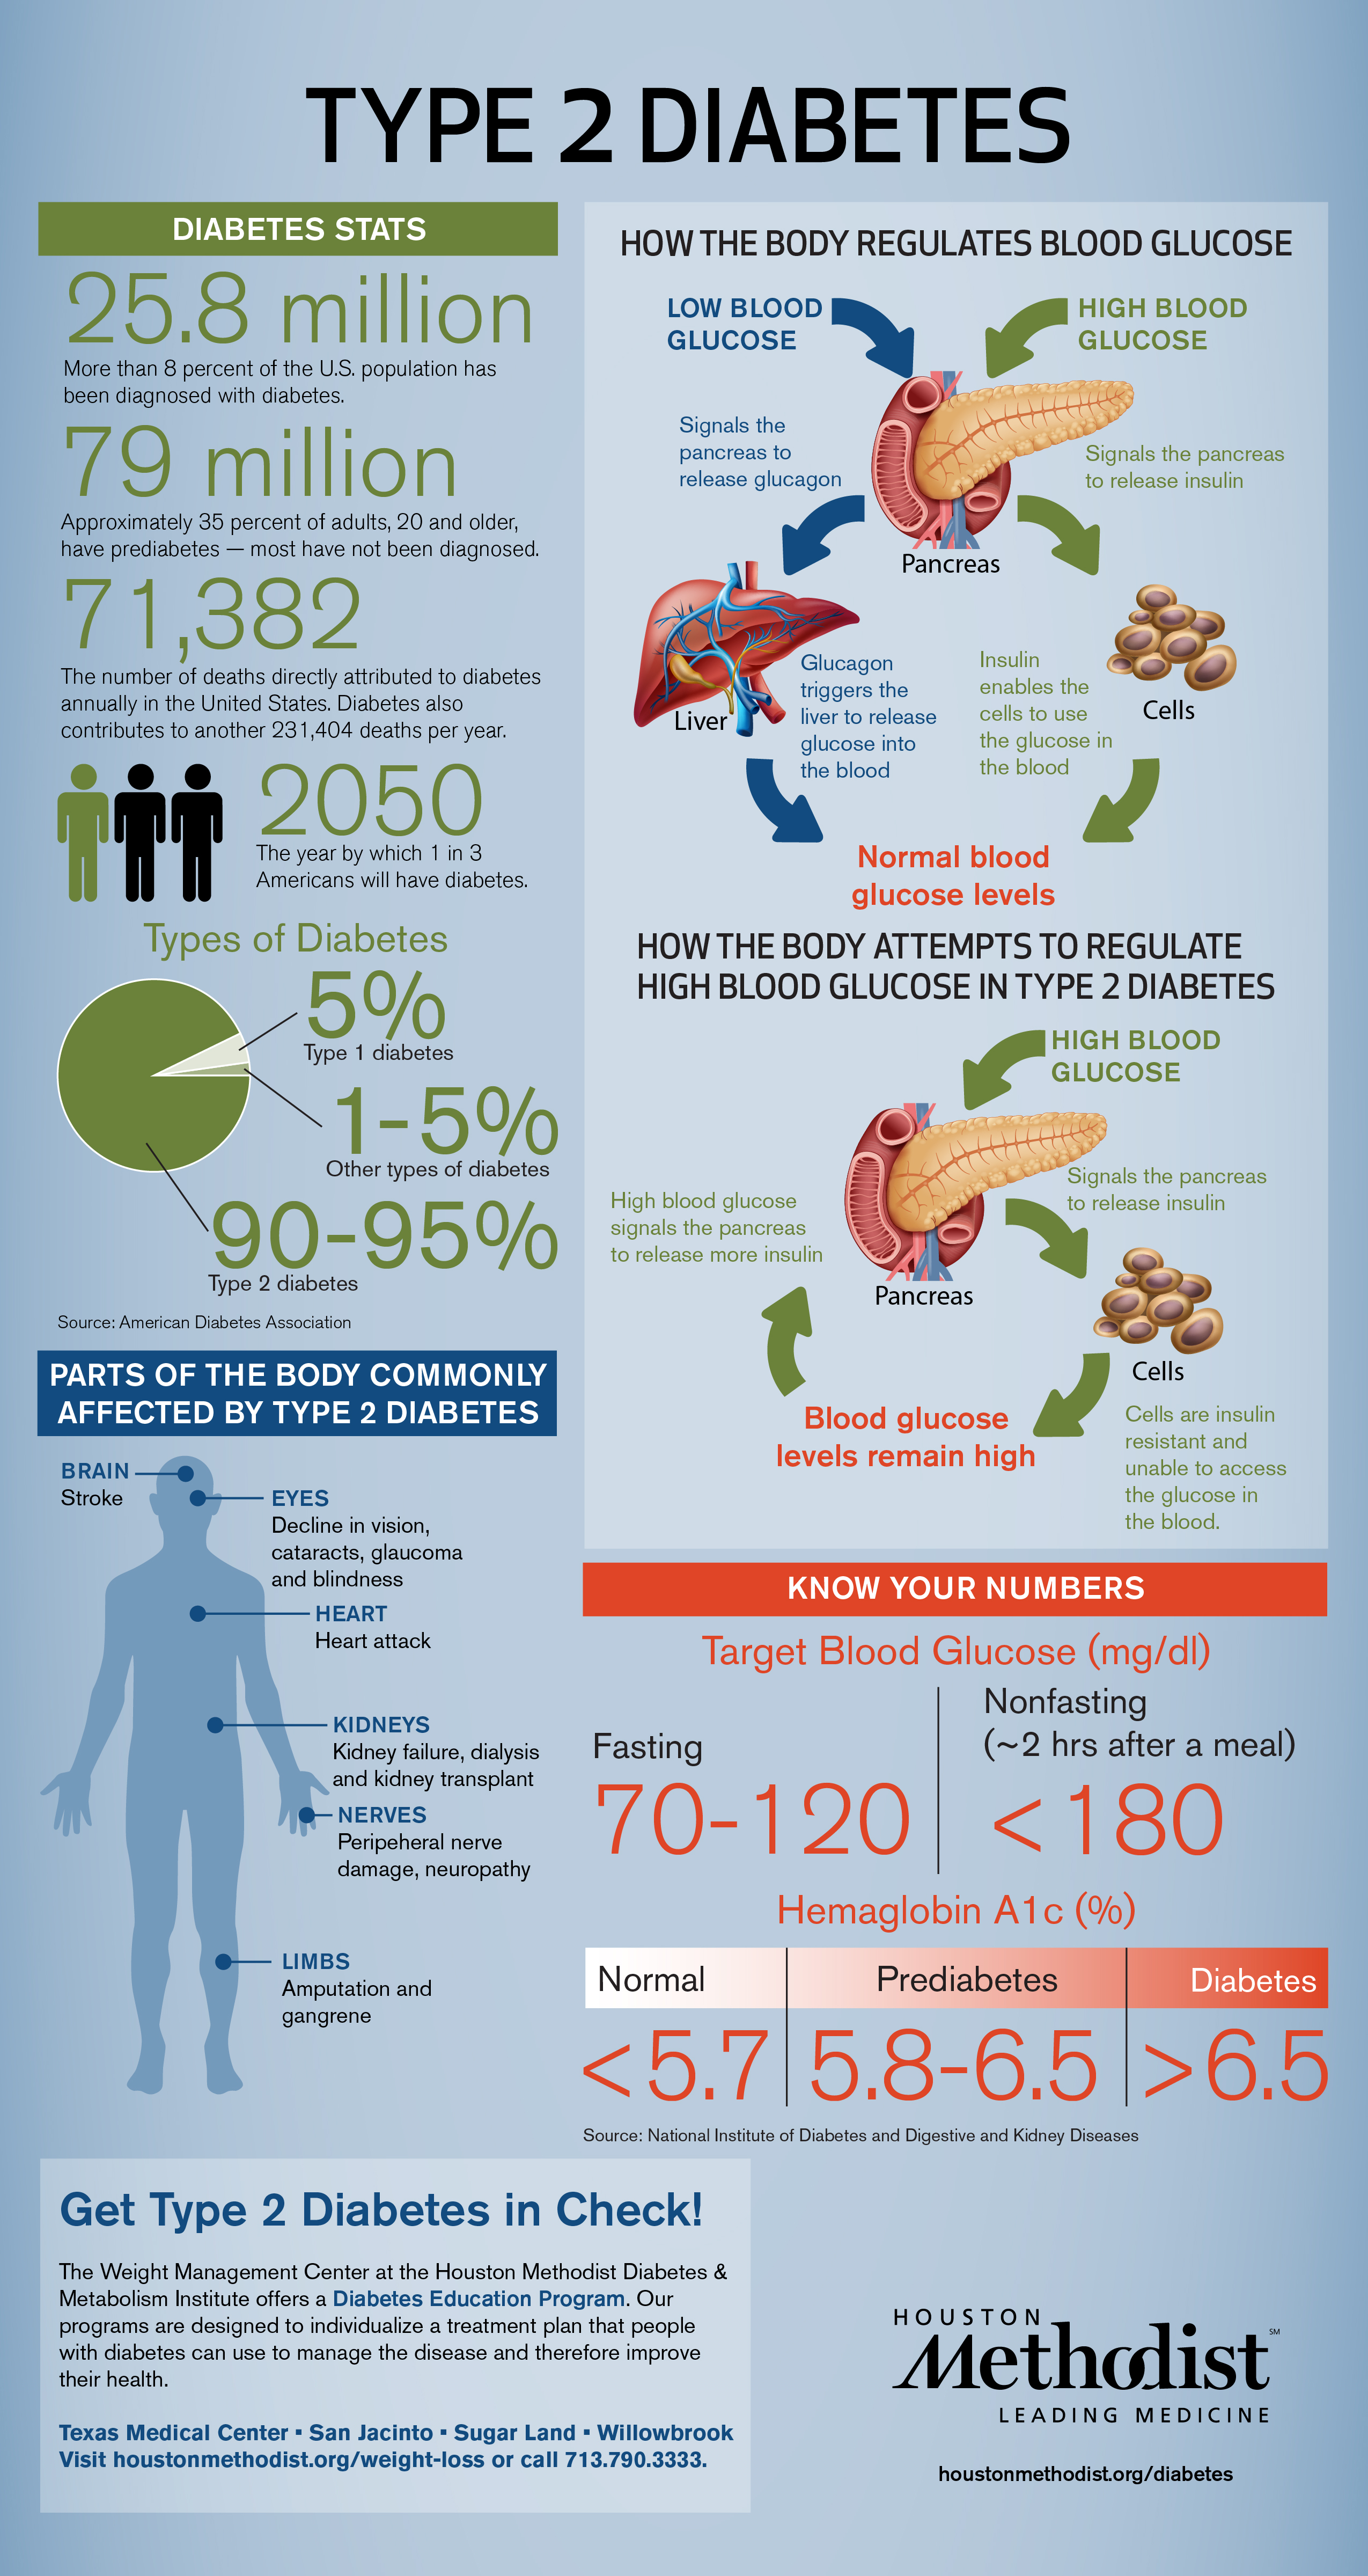 a research on the health risks of type ii diabetes